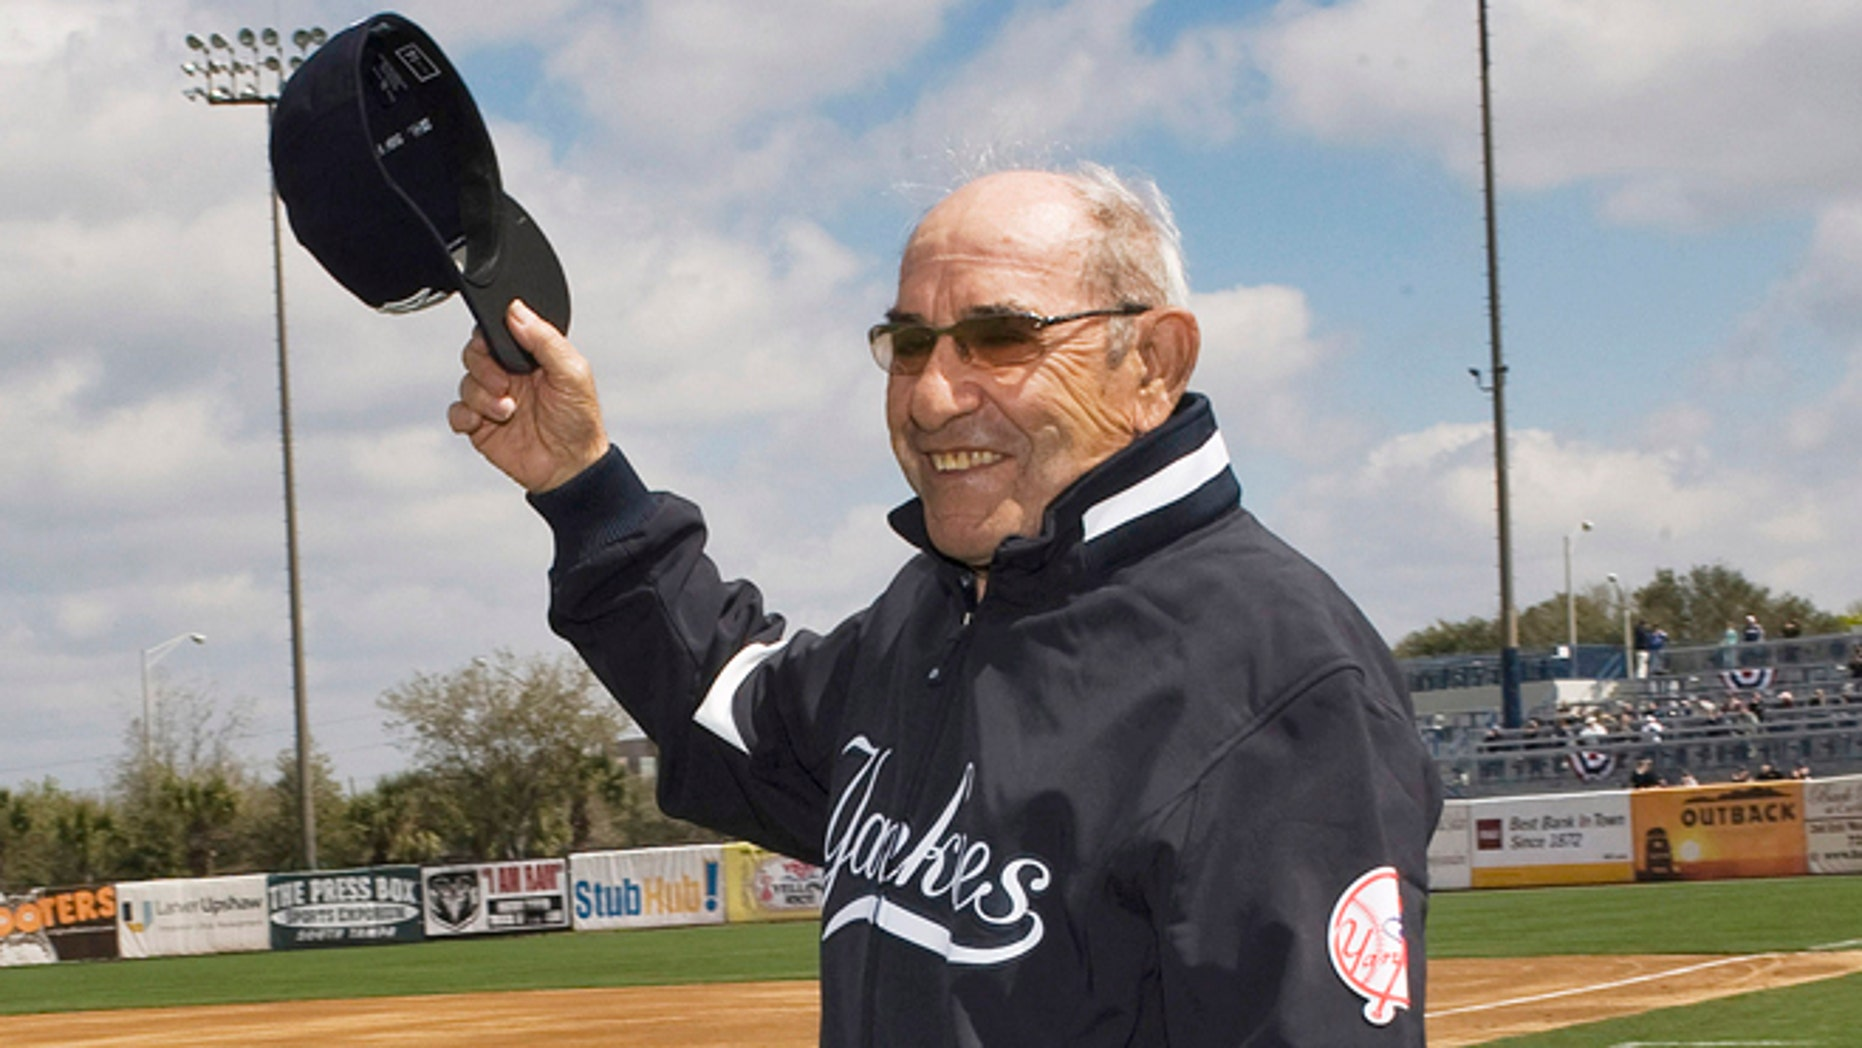 March 3, 2010: Former New York Yankees' player, manager and coach Yogi Berra waves to the crowd before the Yankees home opener spring training baseball game against the Pittsburgh Pirates at George M. Steinbrenner Field in Tampa, Florida.